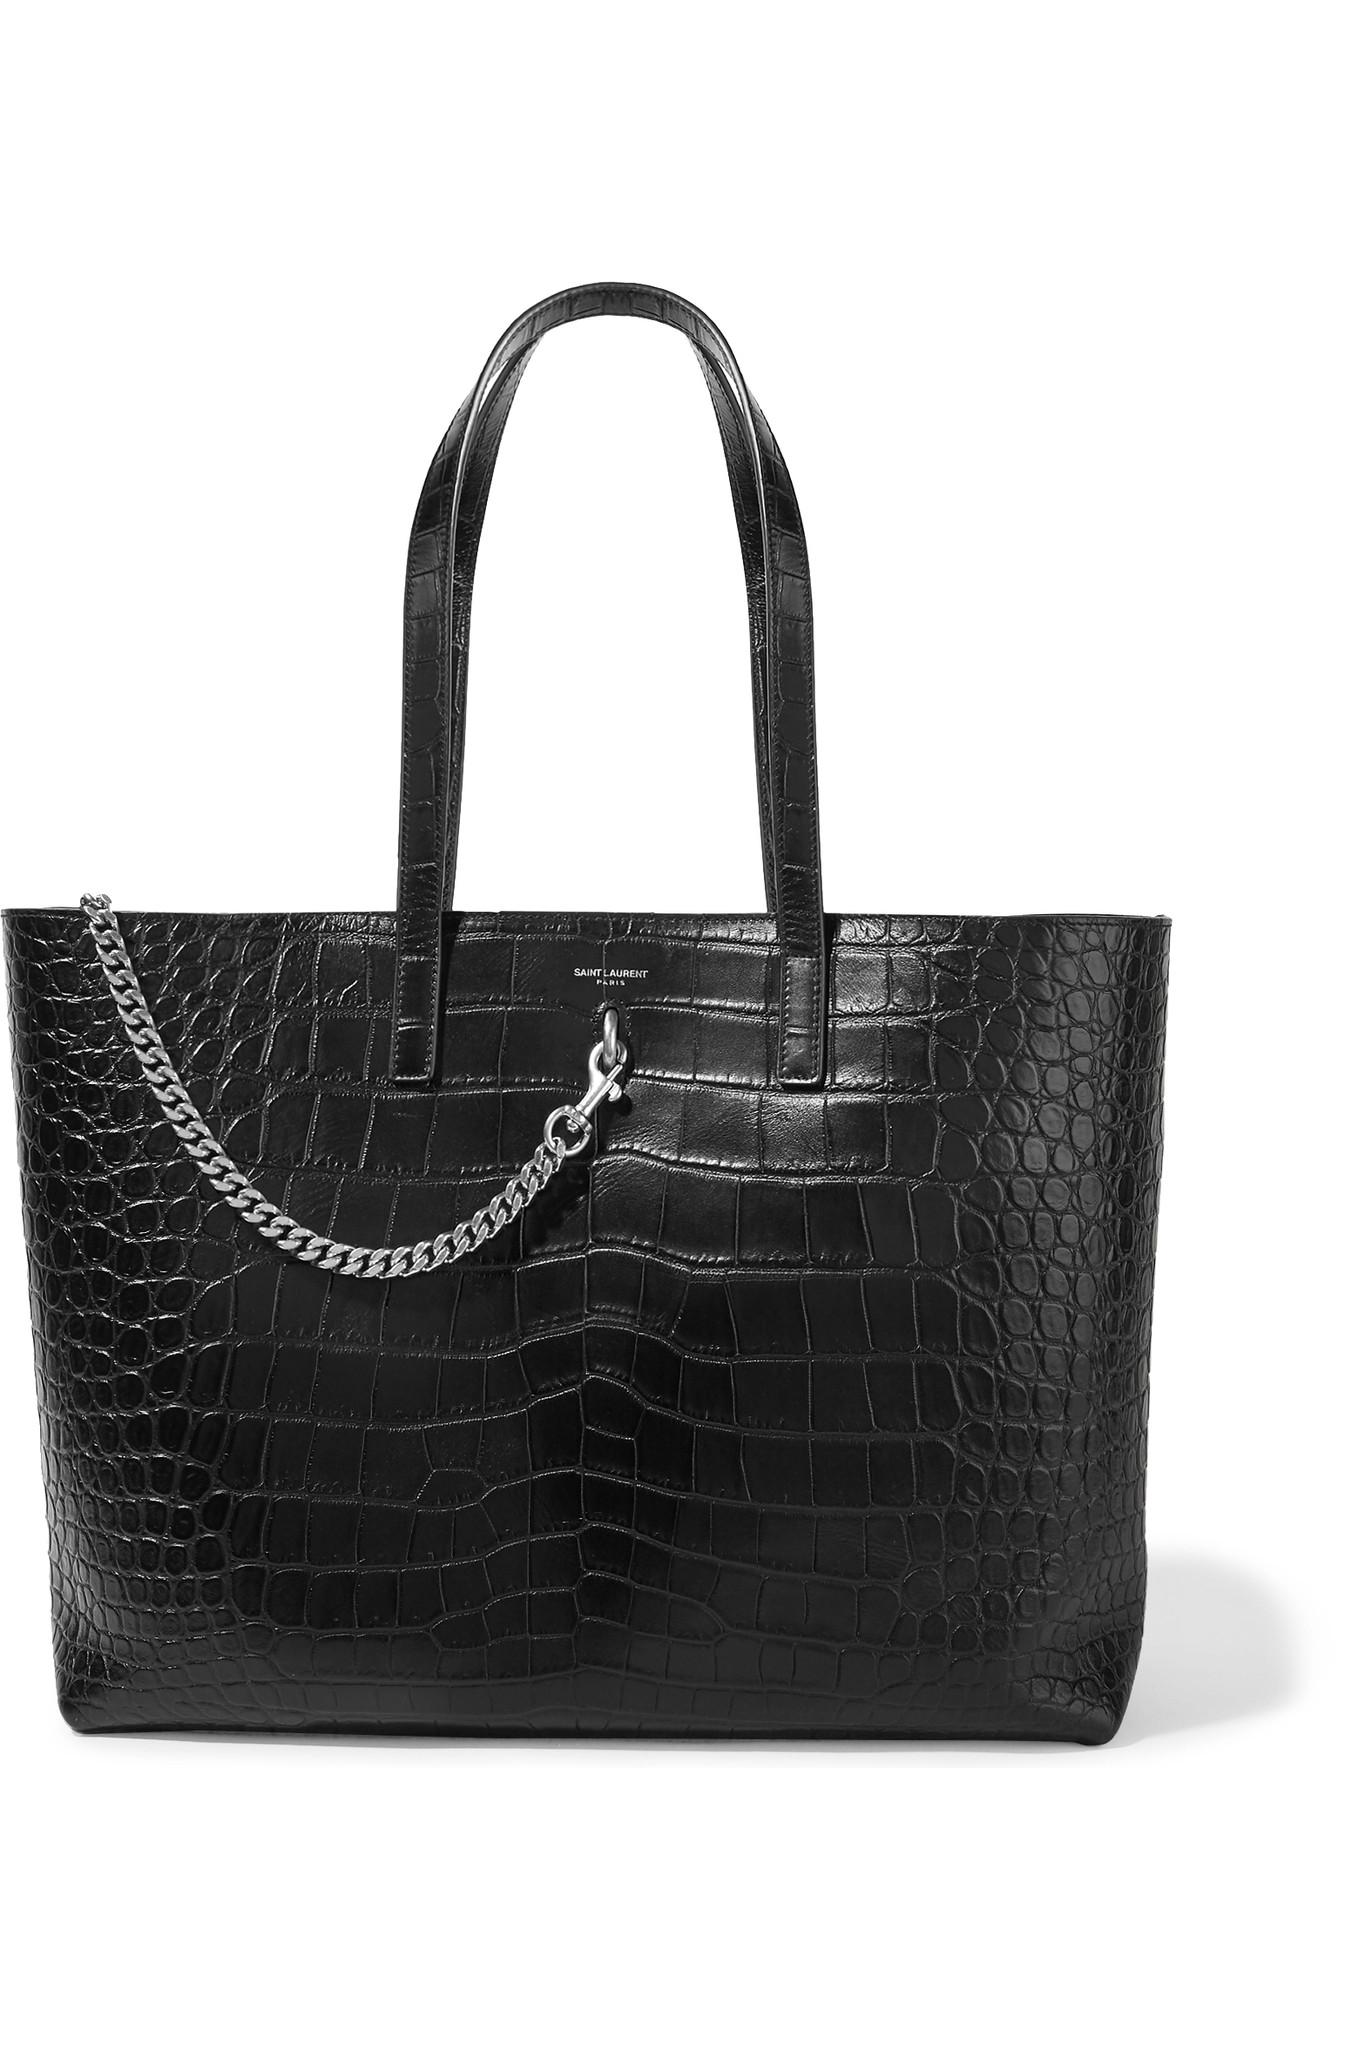 Le Meilleur Saint Laurent Shopping Large Croc Effect Leather Tote In Ce Mois Ci